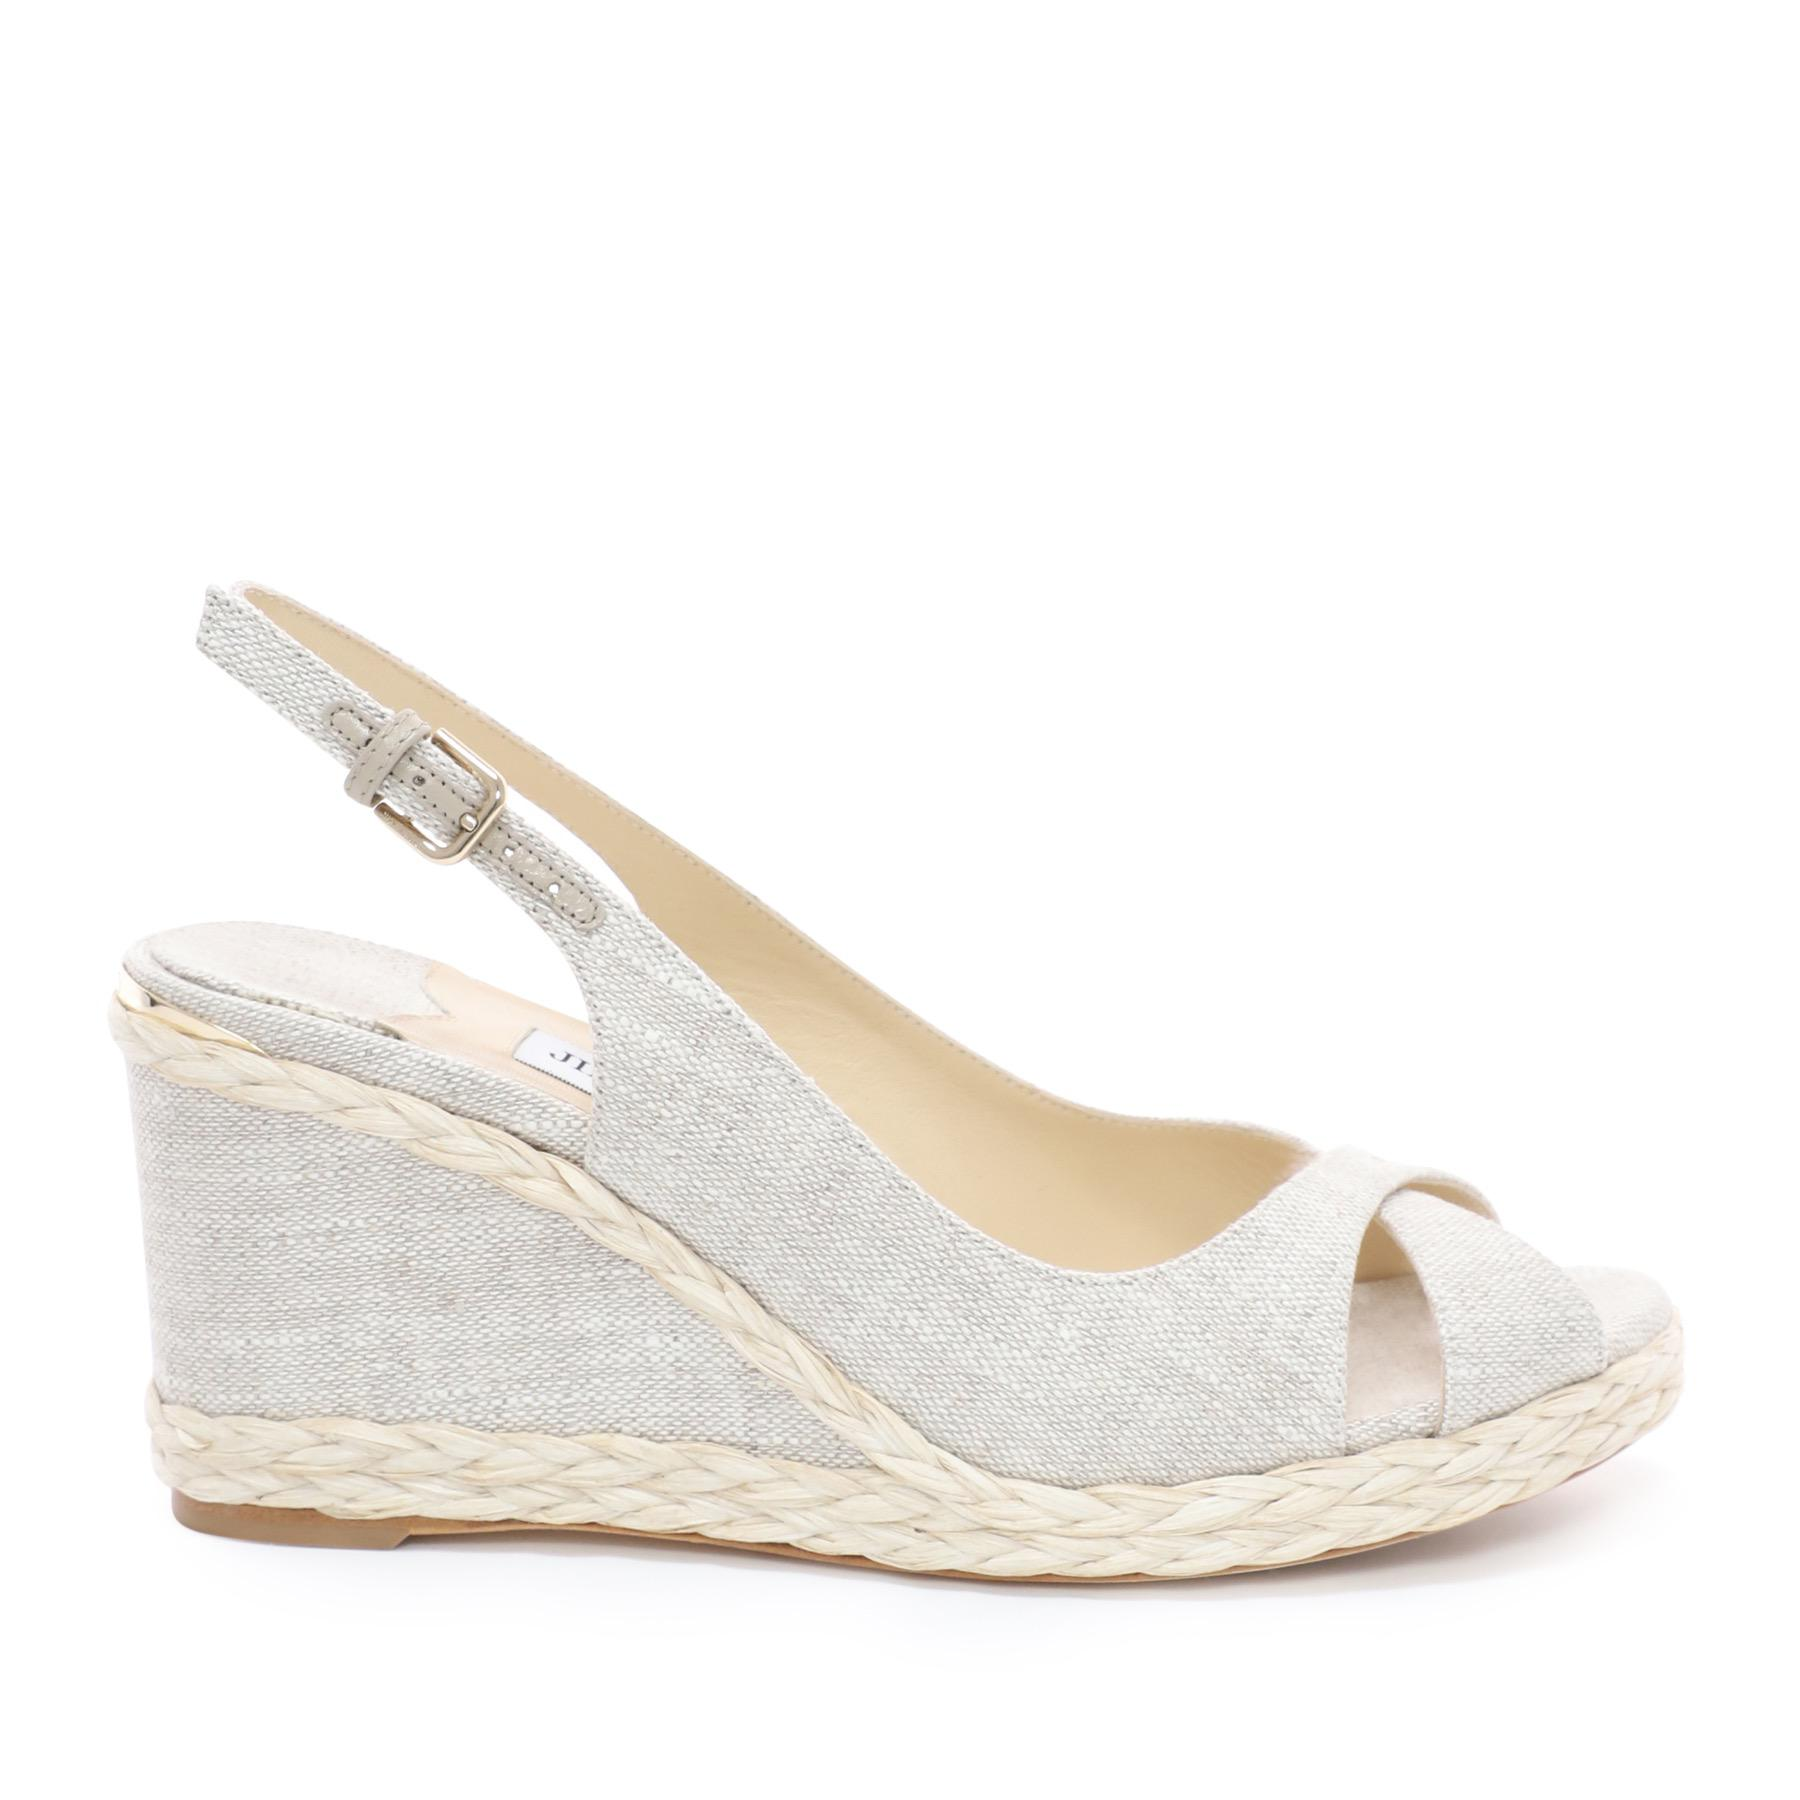 88e7b934672d Jimmy Choo. Women s Amely 80 Natural Linen Wedges With Braid Trim